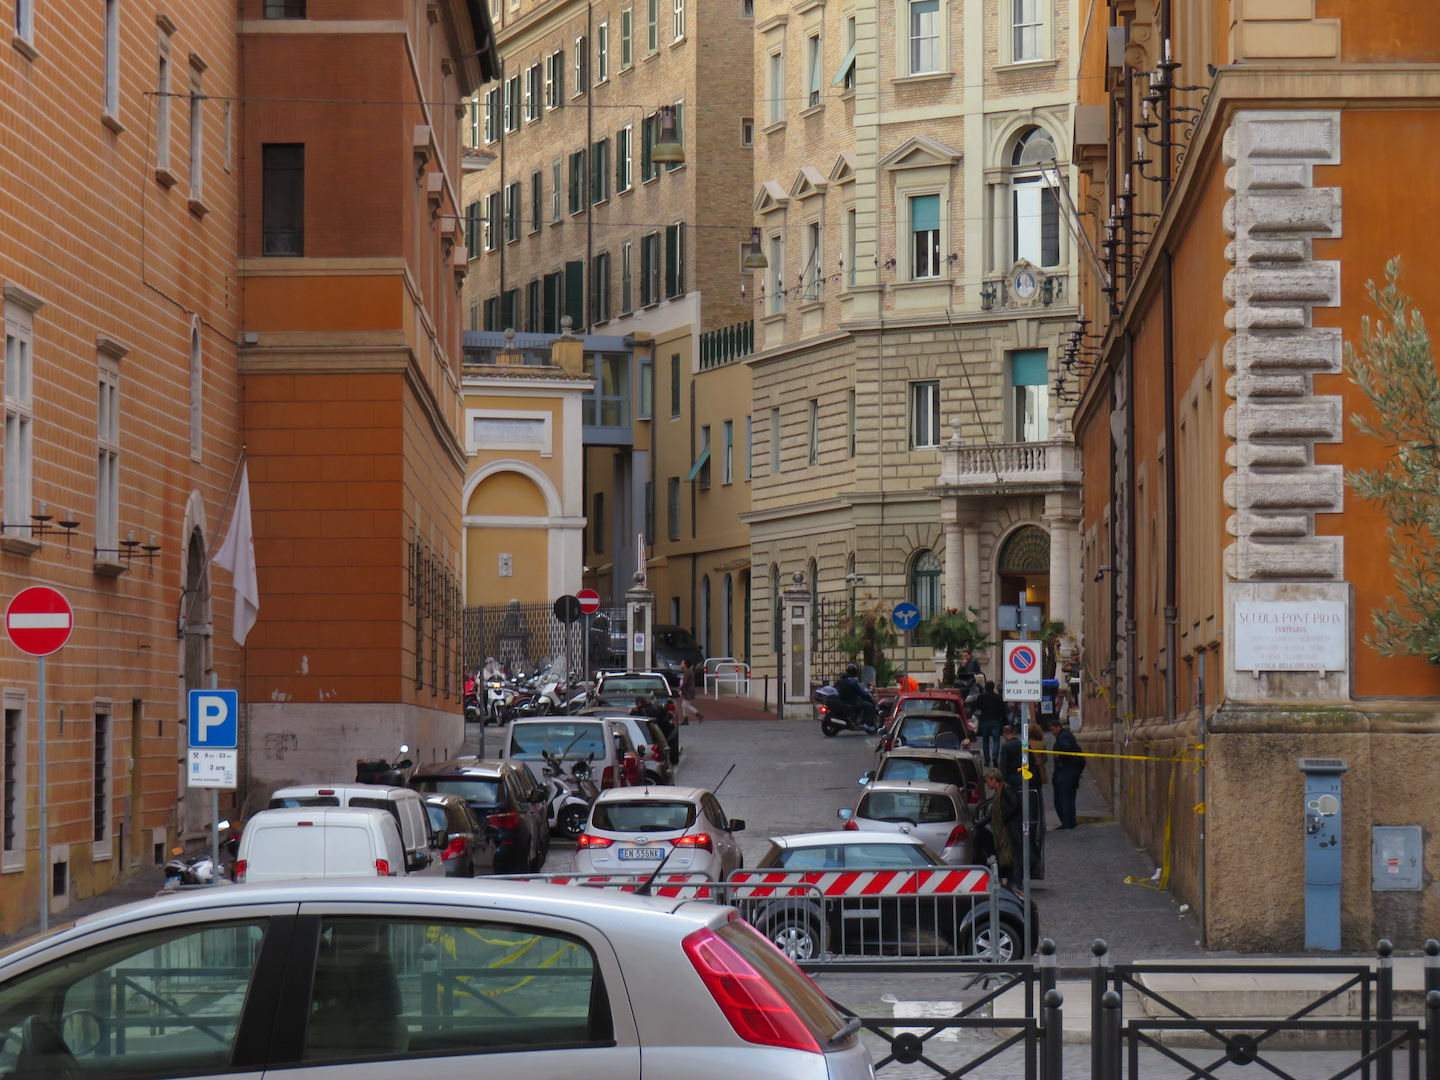 Street in Rome, Italy